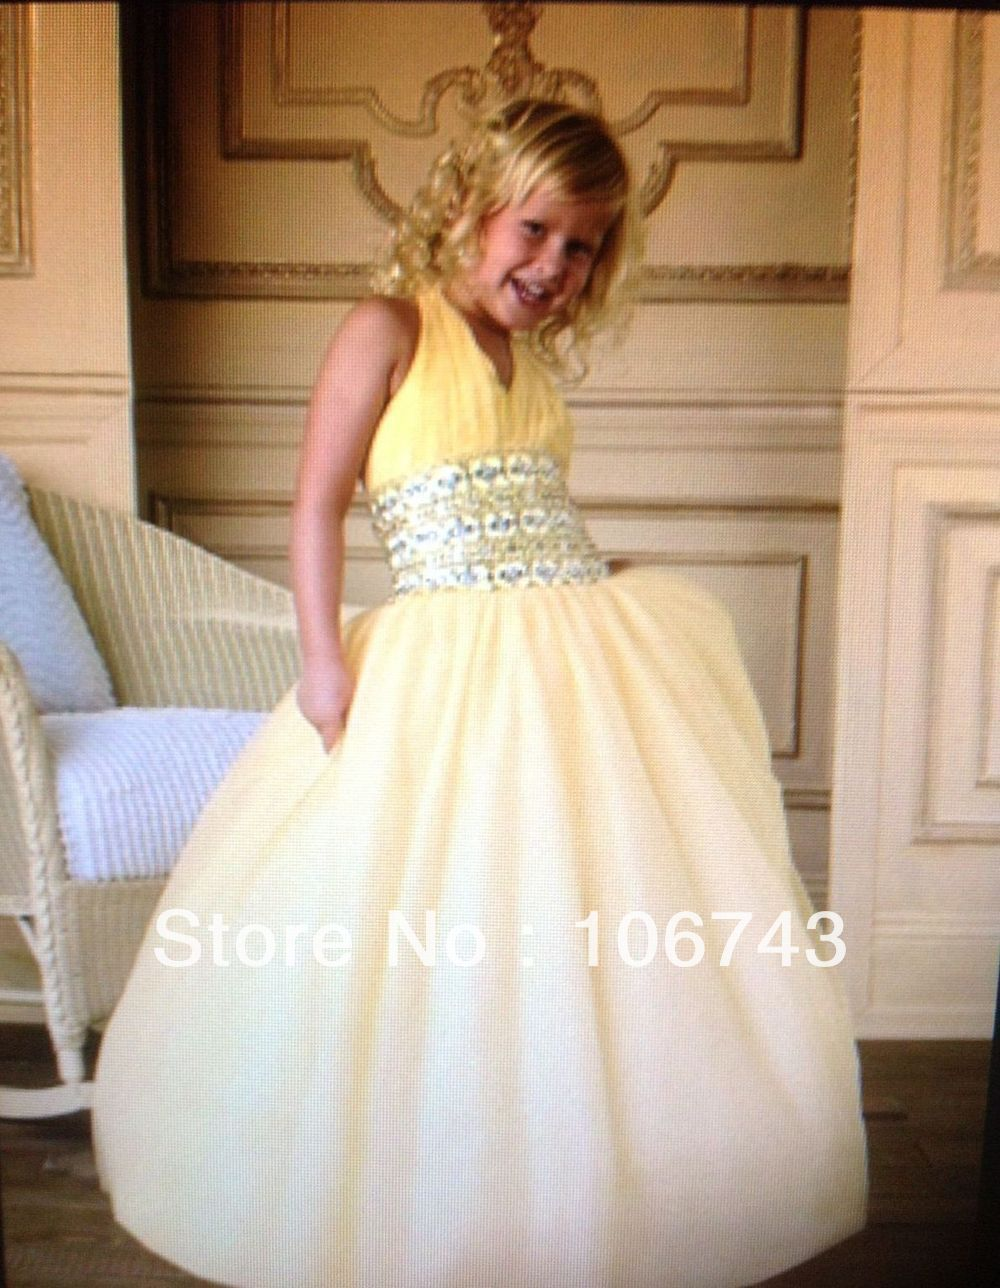 Free Shipping Girls, Size 14 Dresses 2016 White Gown Stunning Halter Sweet Short Princess Tulle Dress Flower Girl Dresses